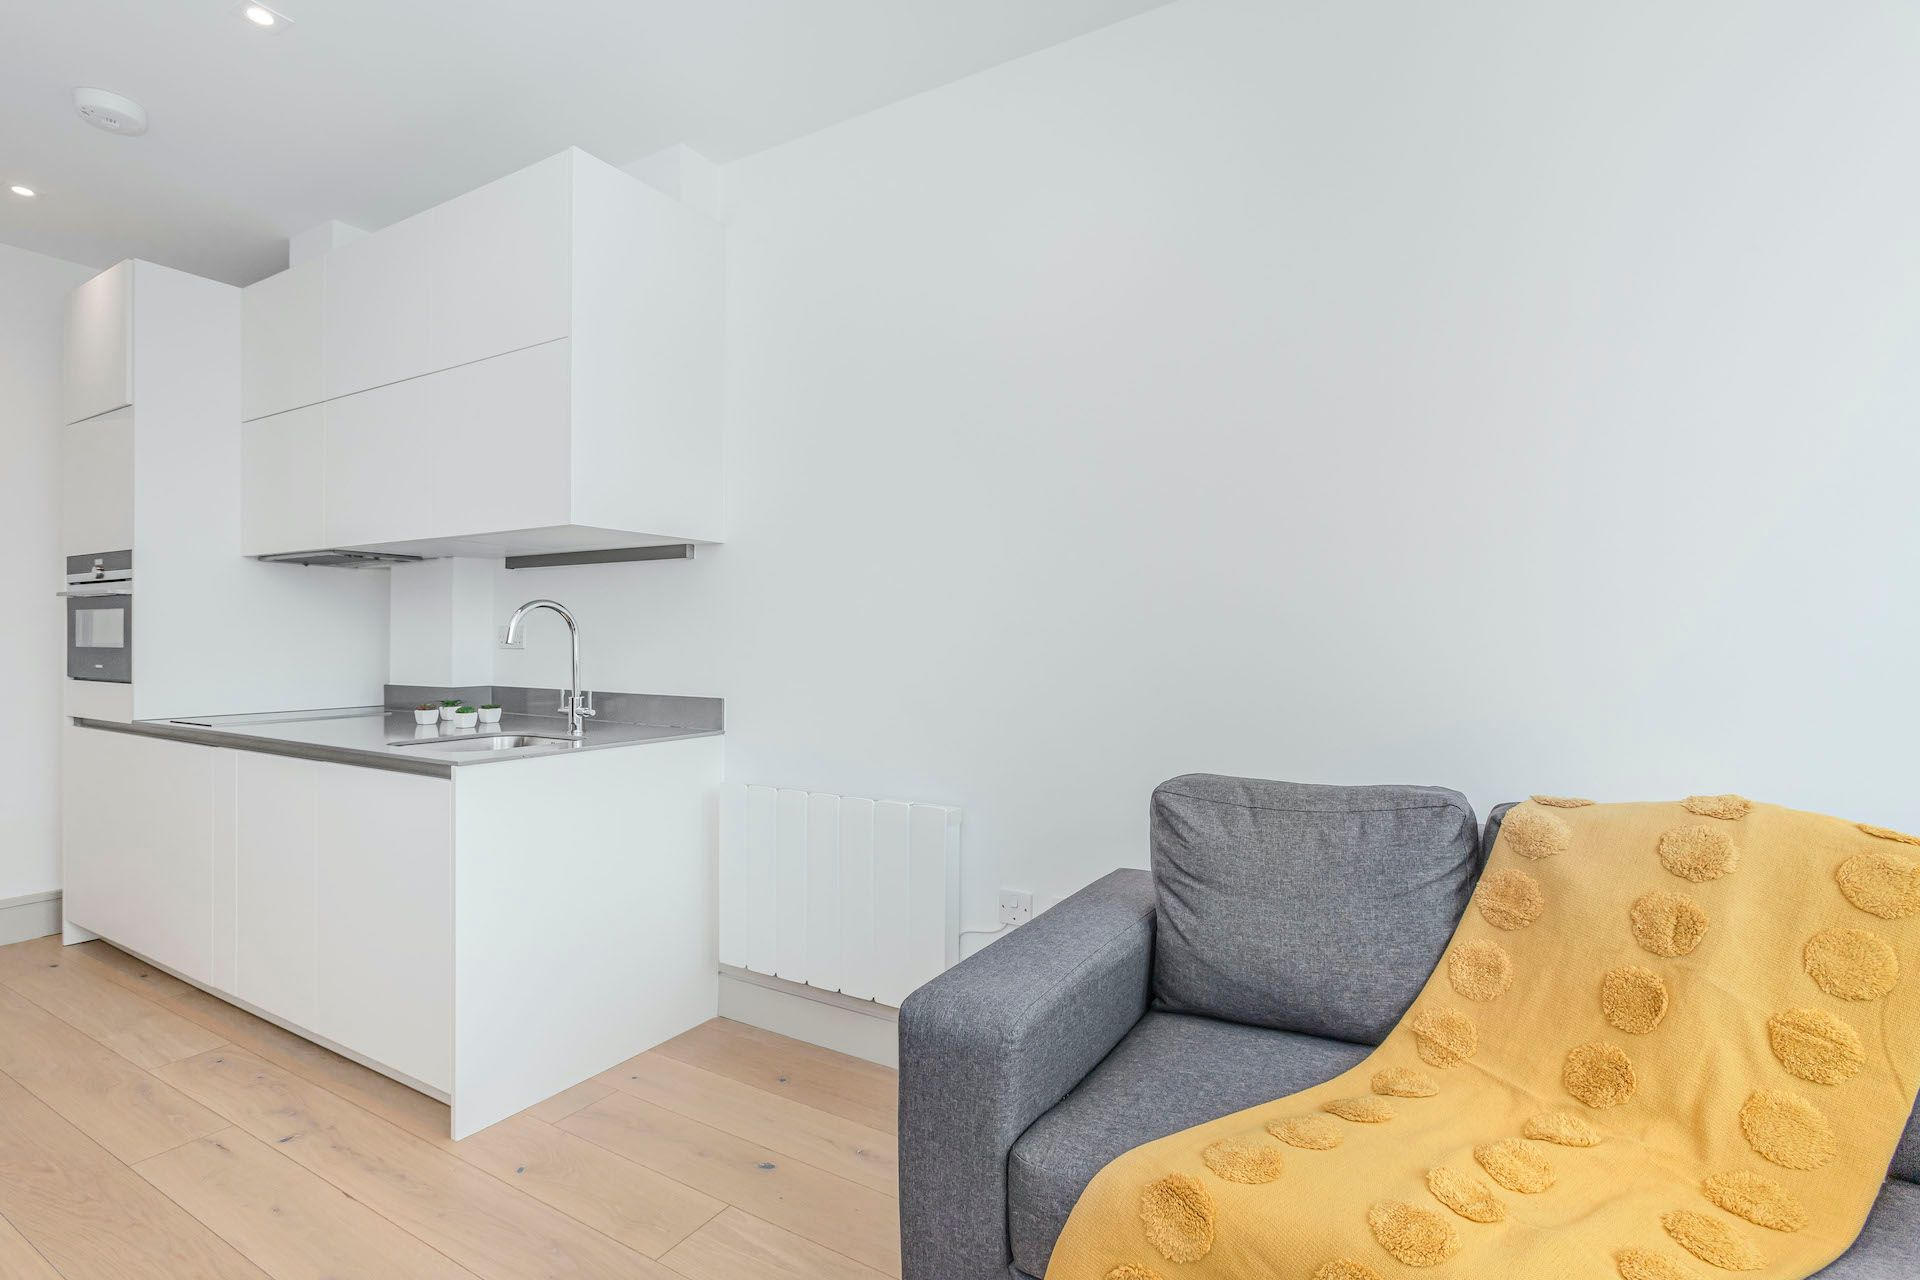 1 Bedroom apartment to rent in London BRO-BH-0042